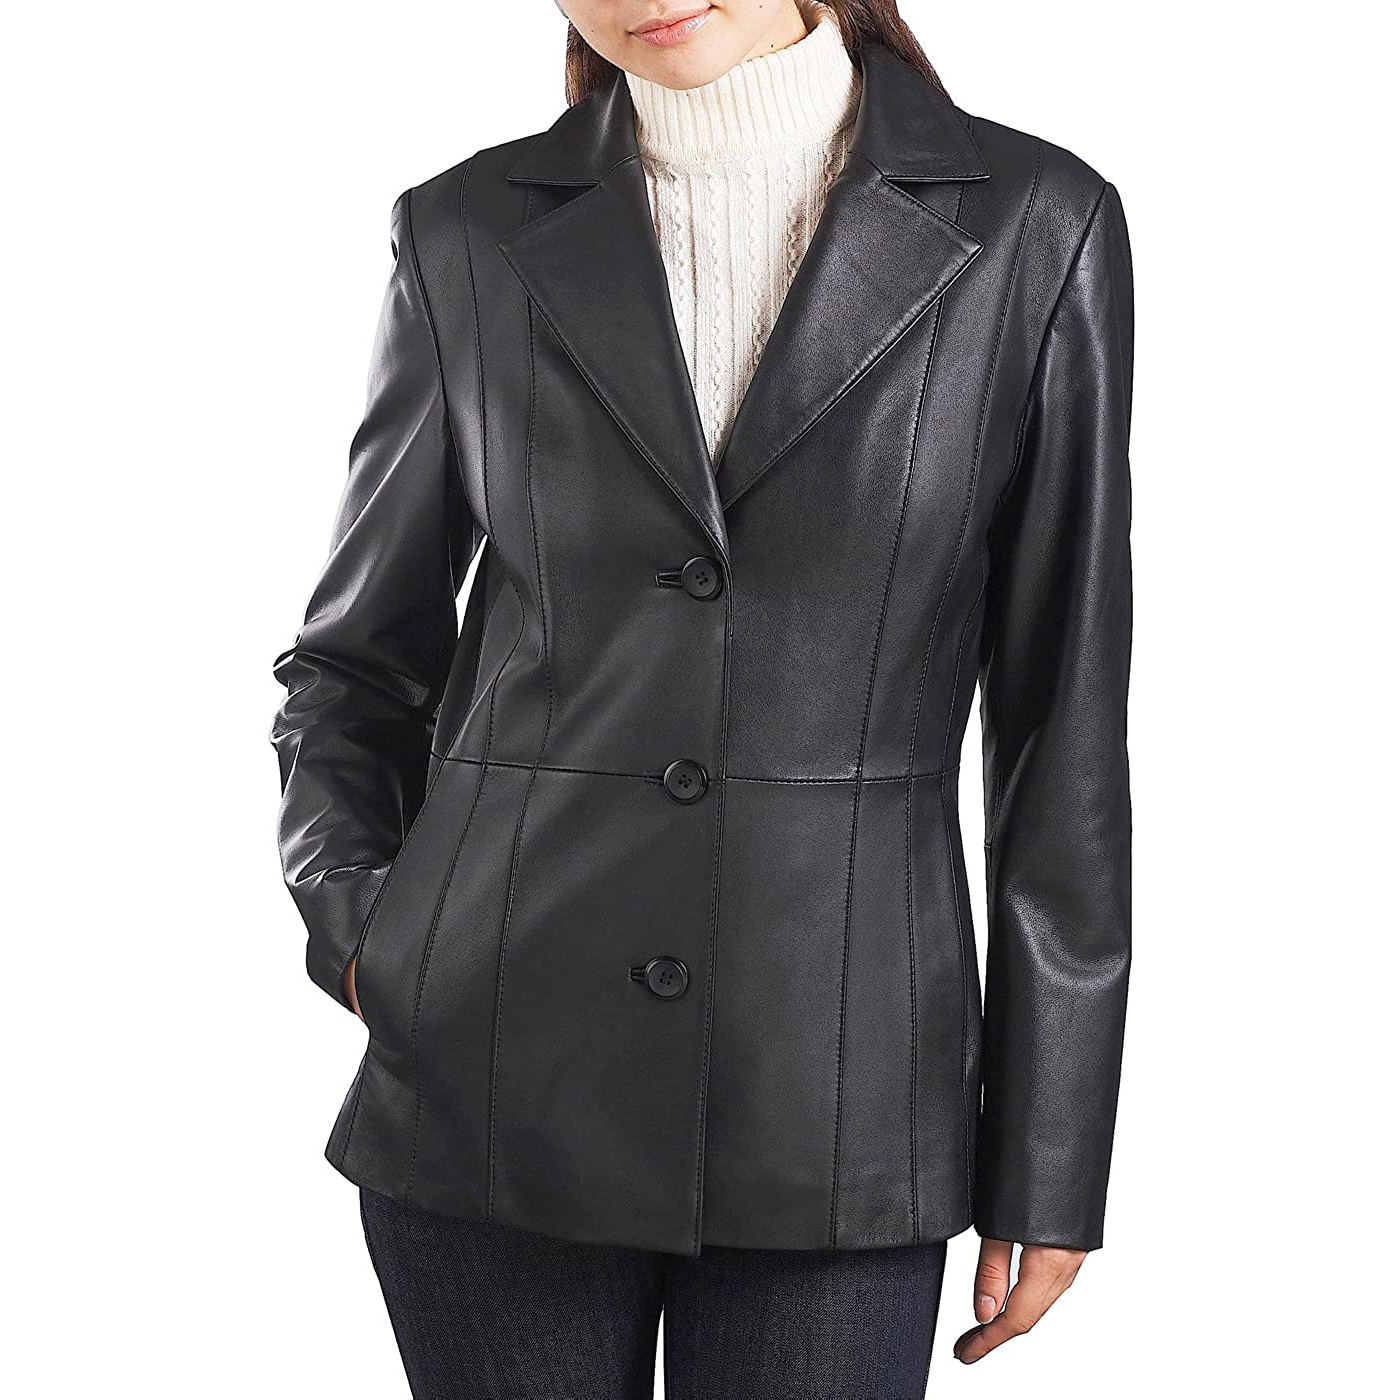 BGSD Women's Crystal Lambskin Leather Blazer